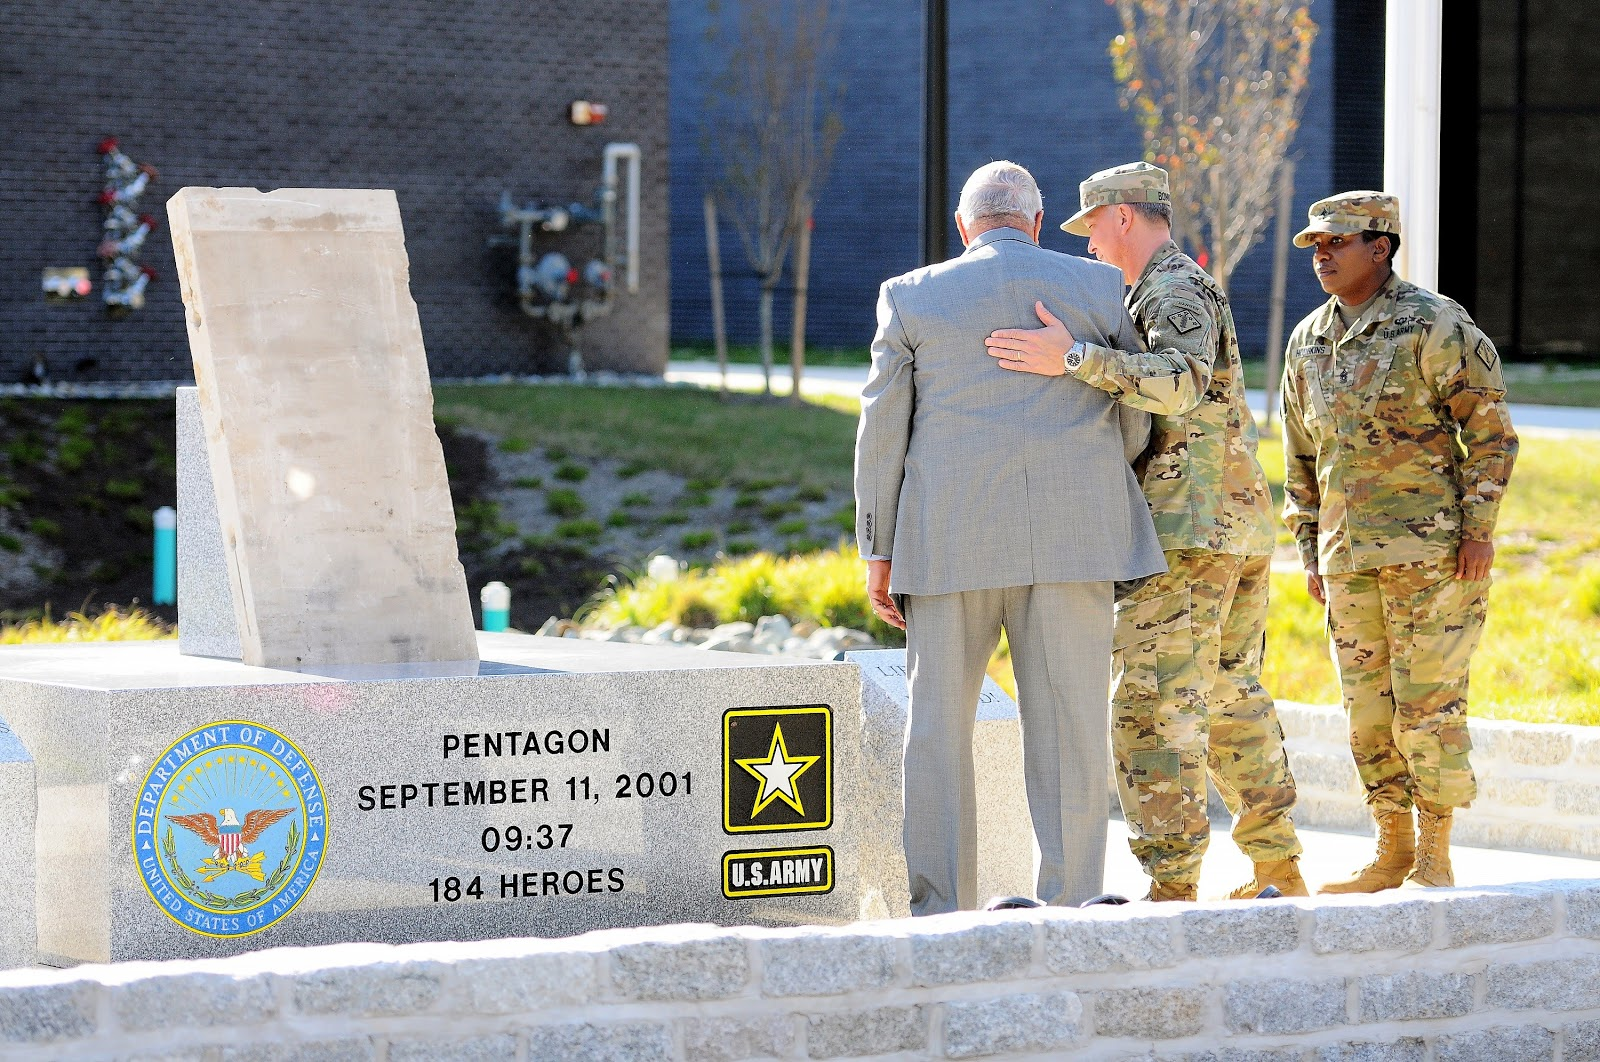 New Pentagon Memorial Unveiled At Aberdeen Proving Ground